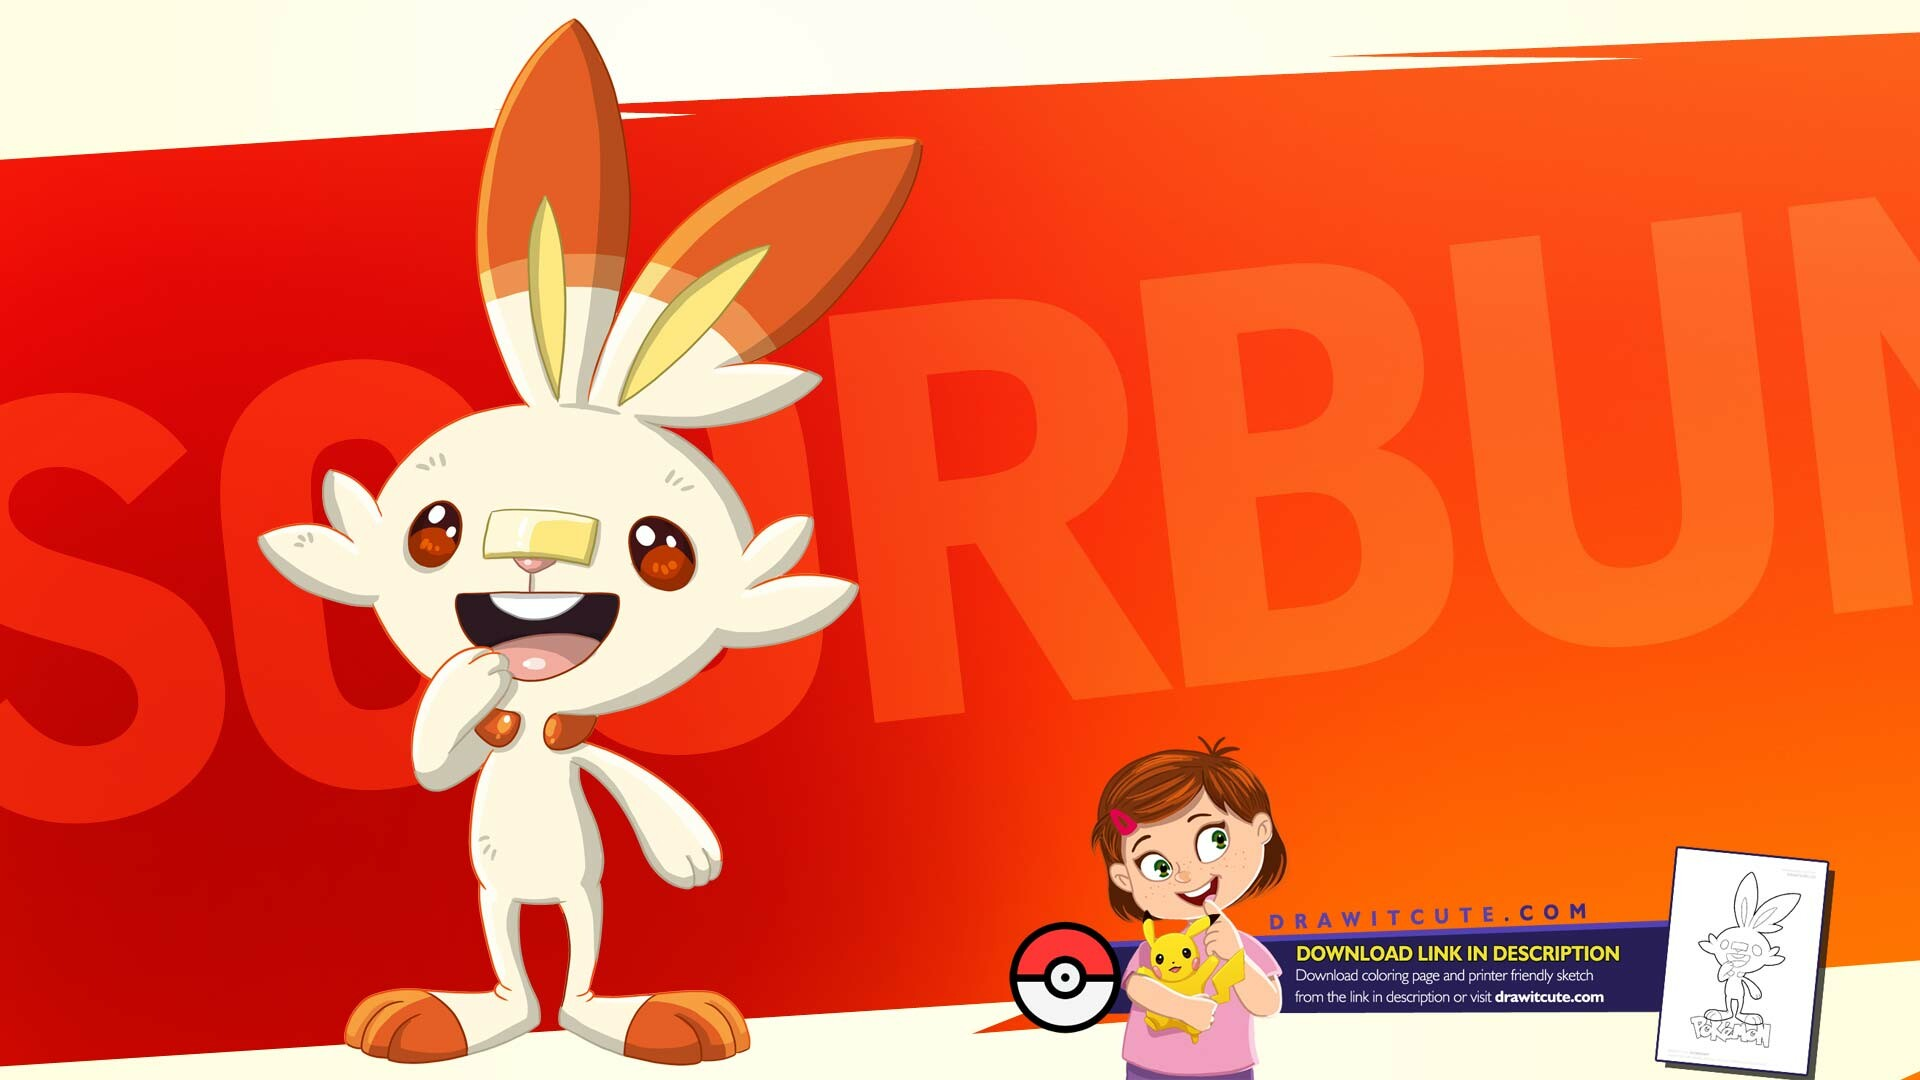 Artstation How To Draw Scorbunny Pokemon Super Easy With Coloring Page Drawitcute Com